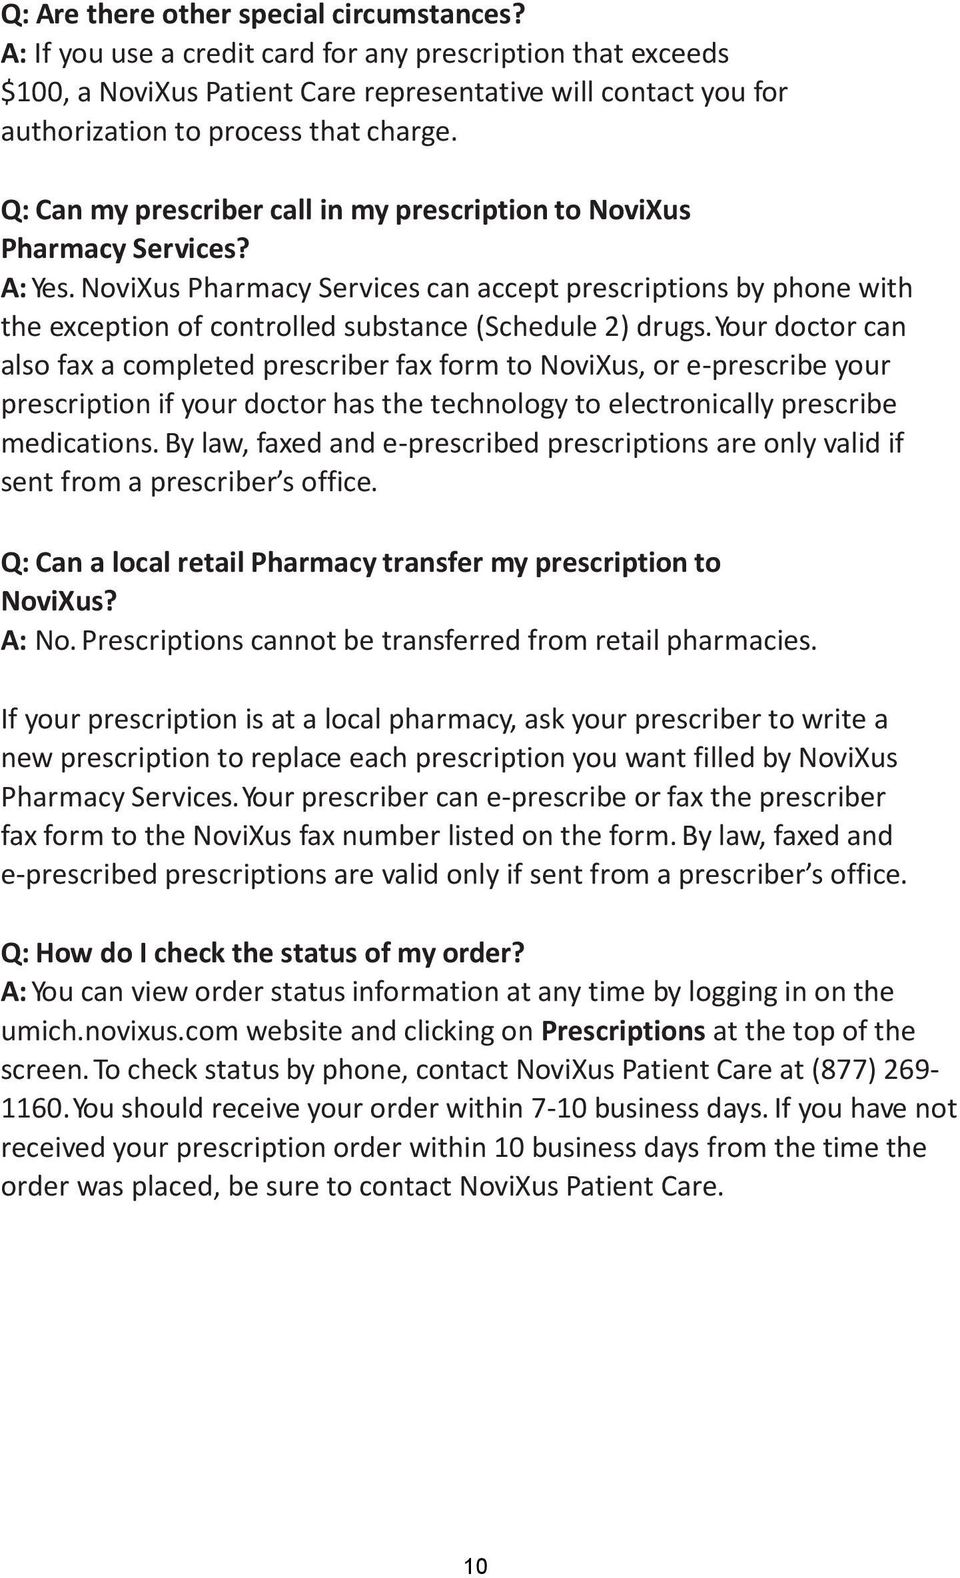 Q: Can my prescriber call in my prescription to NoviXus Pharmacy Services? A: Yes.